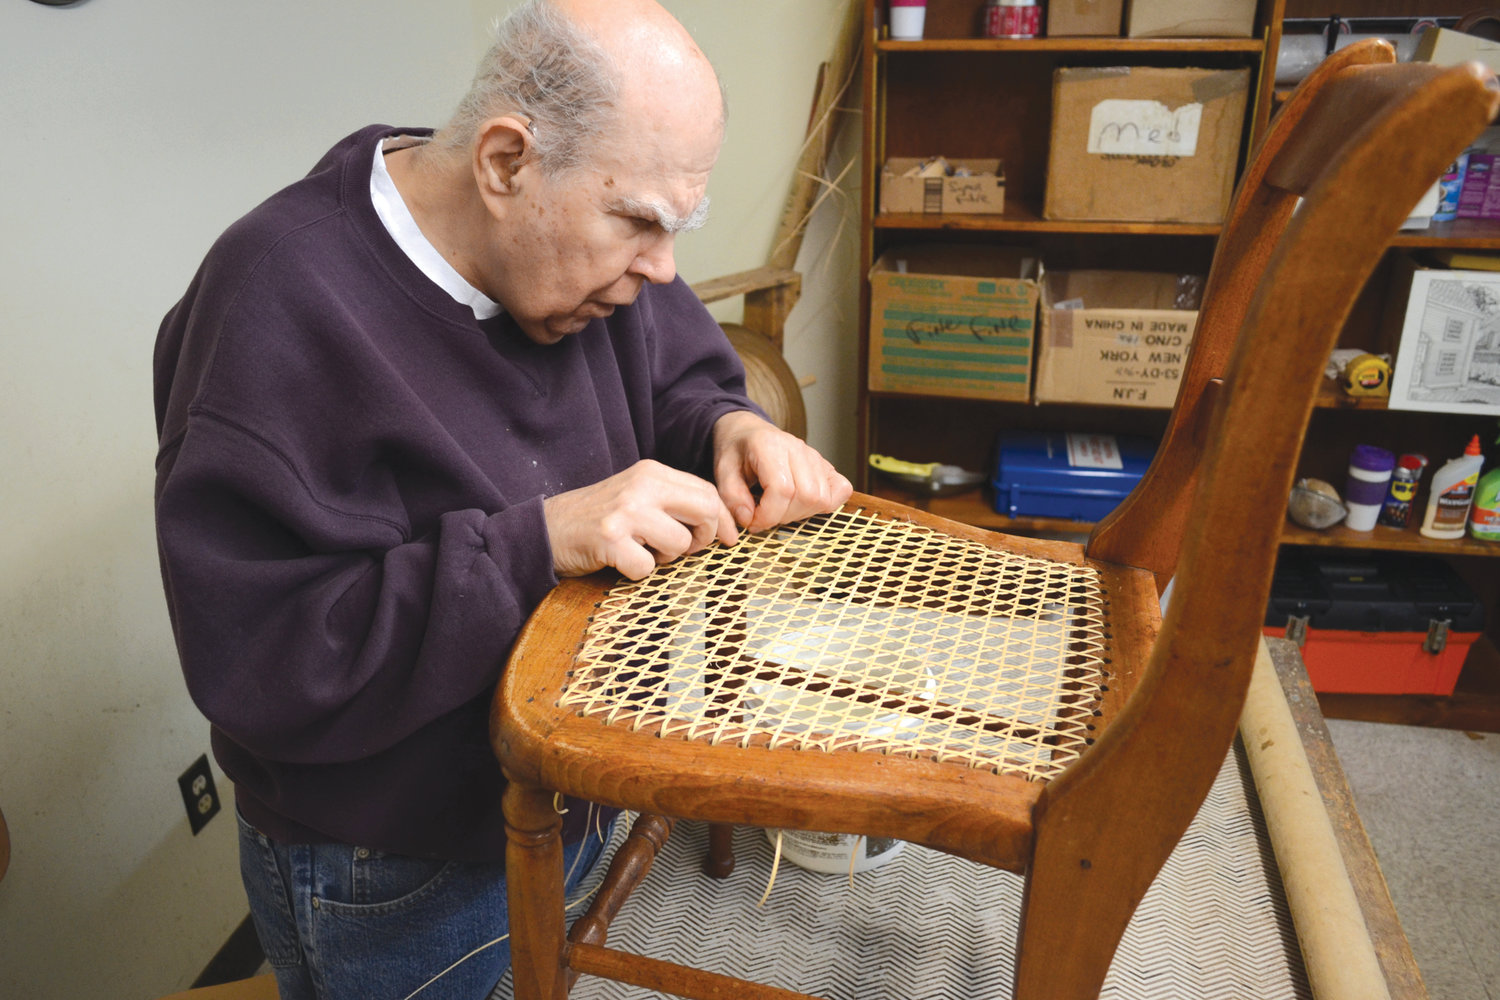 MASTER CRAFTSMAN: Ray Pontbriant works on caning a chair in the INSIGHT workshop. This will be the final year for such intricate work at the facility, as the caning shop is closing down in December.